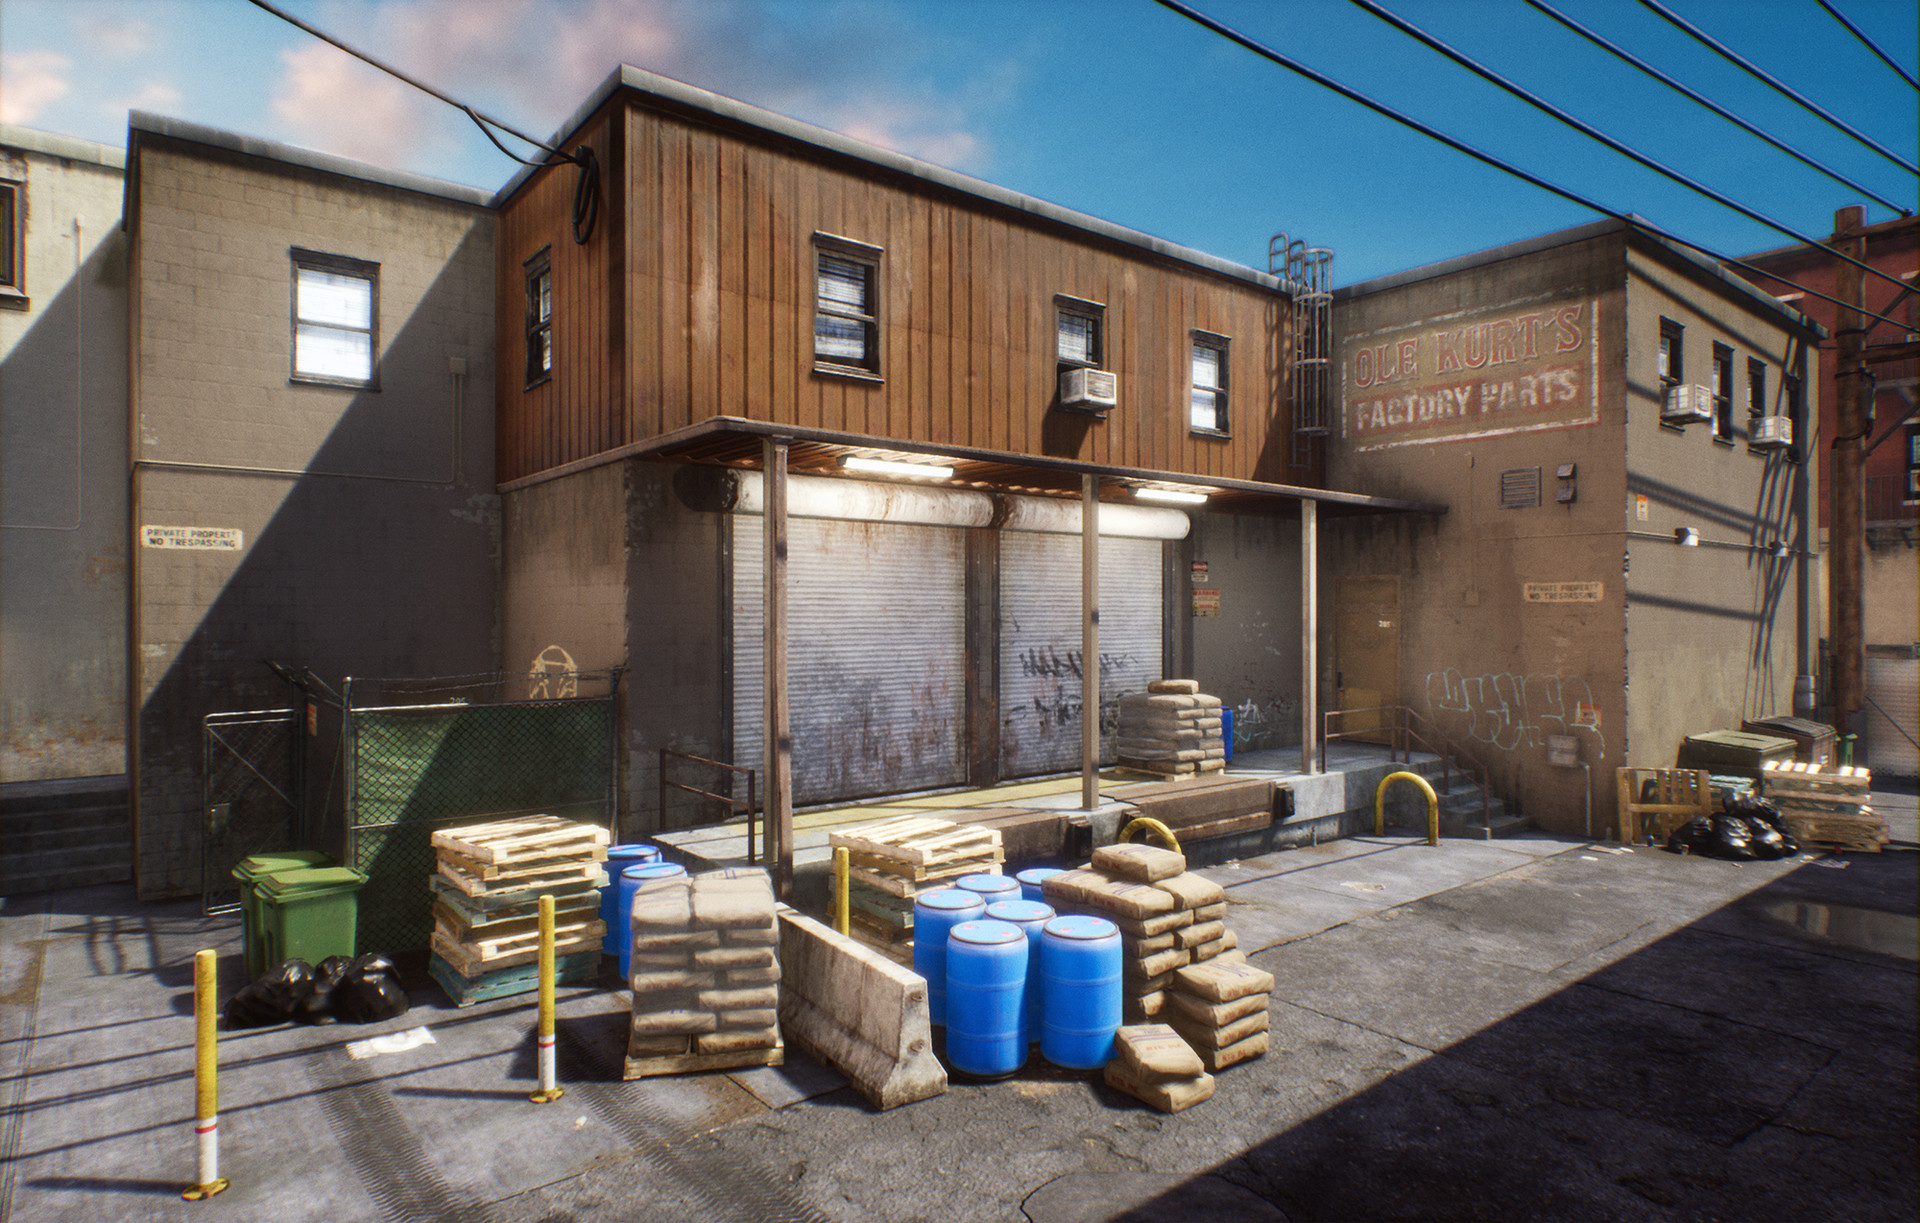 Kurt kupser alley render 04